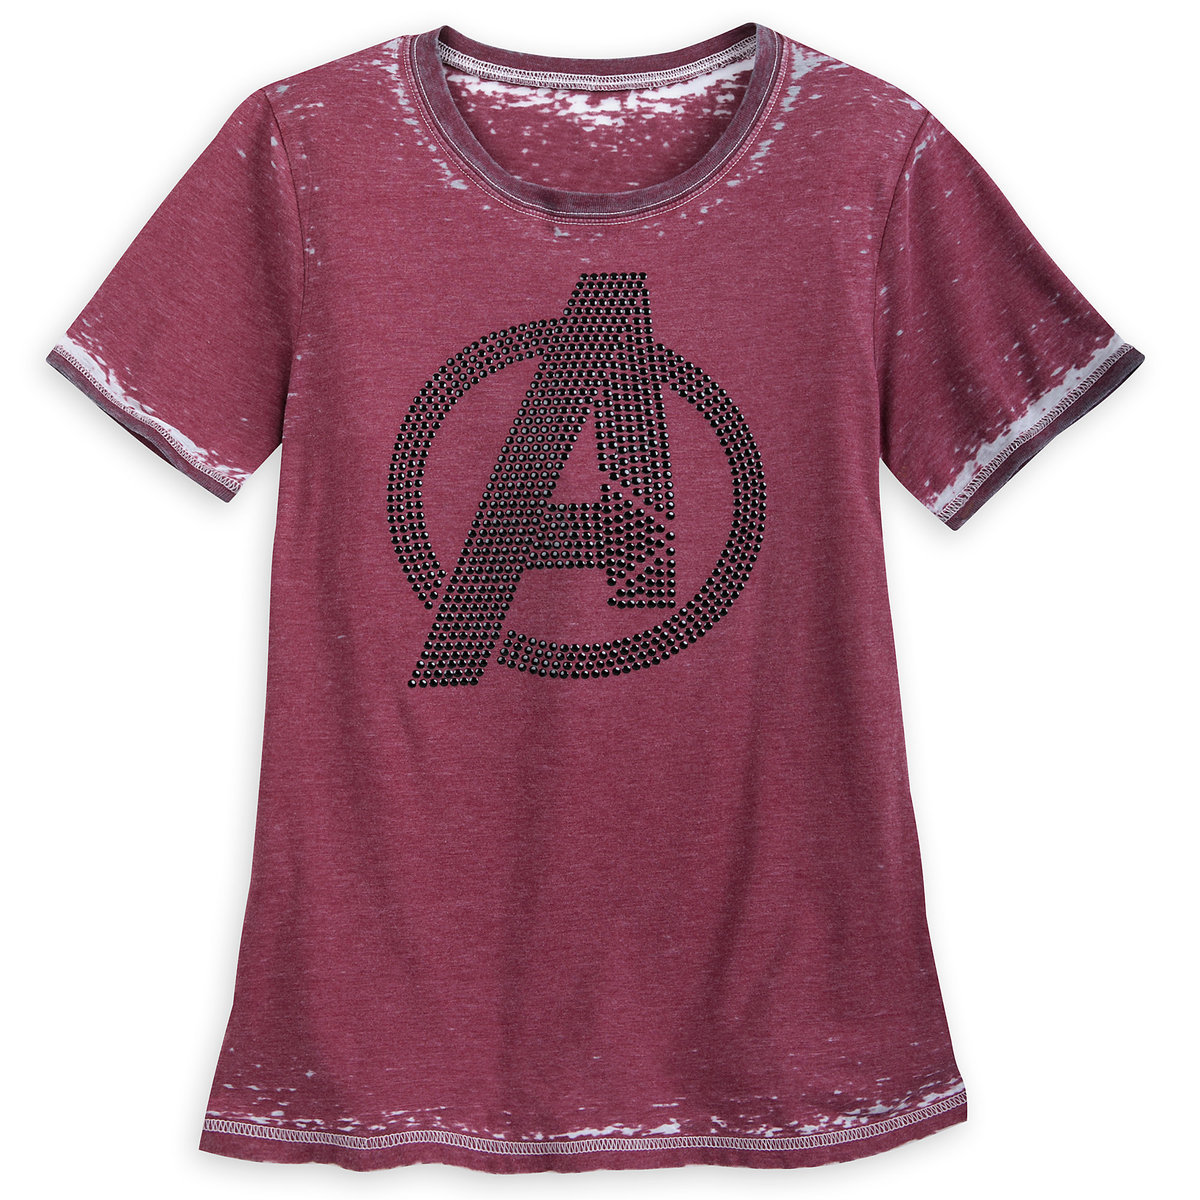 99d008cb62df Product Image of Marvel's Avengers: Endgame T-Shirt for Women # 1